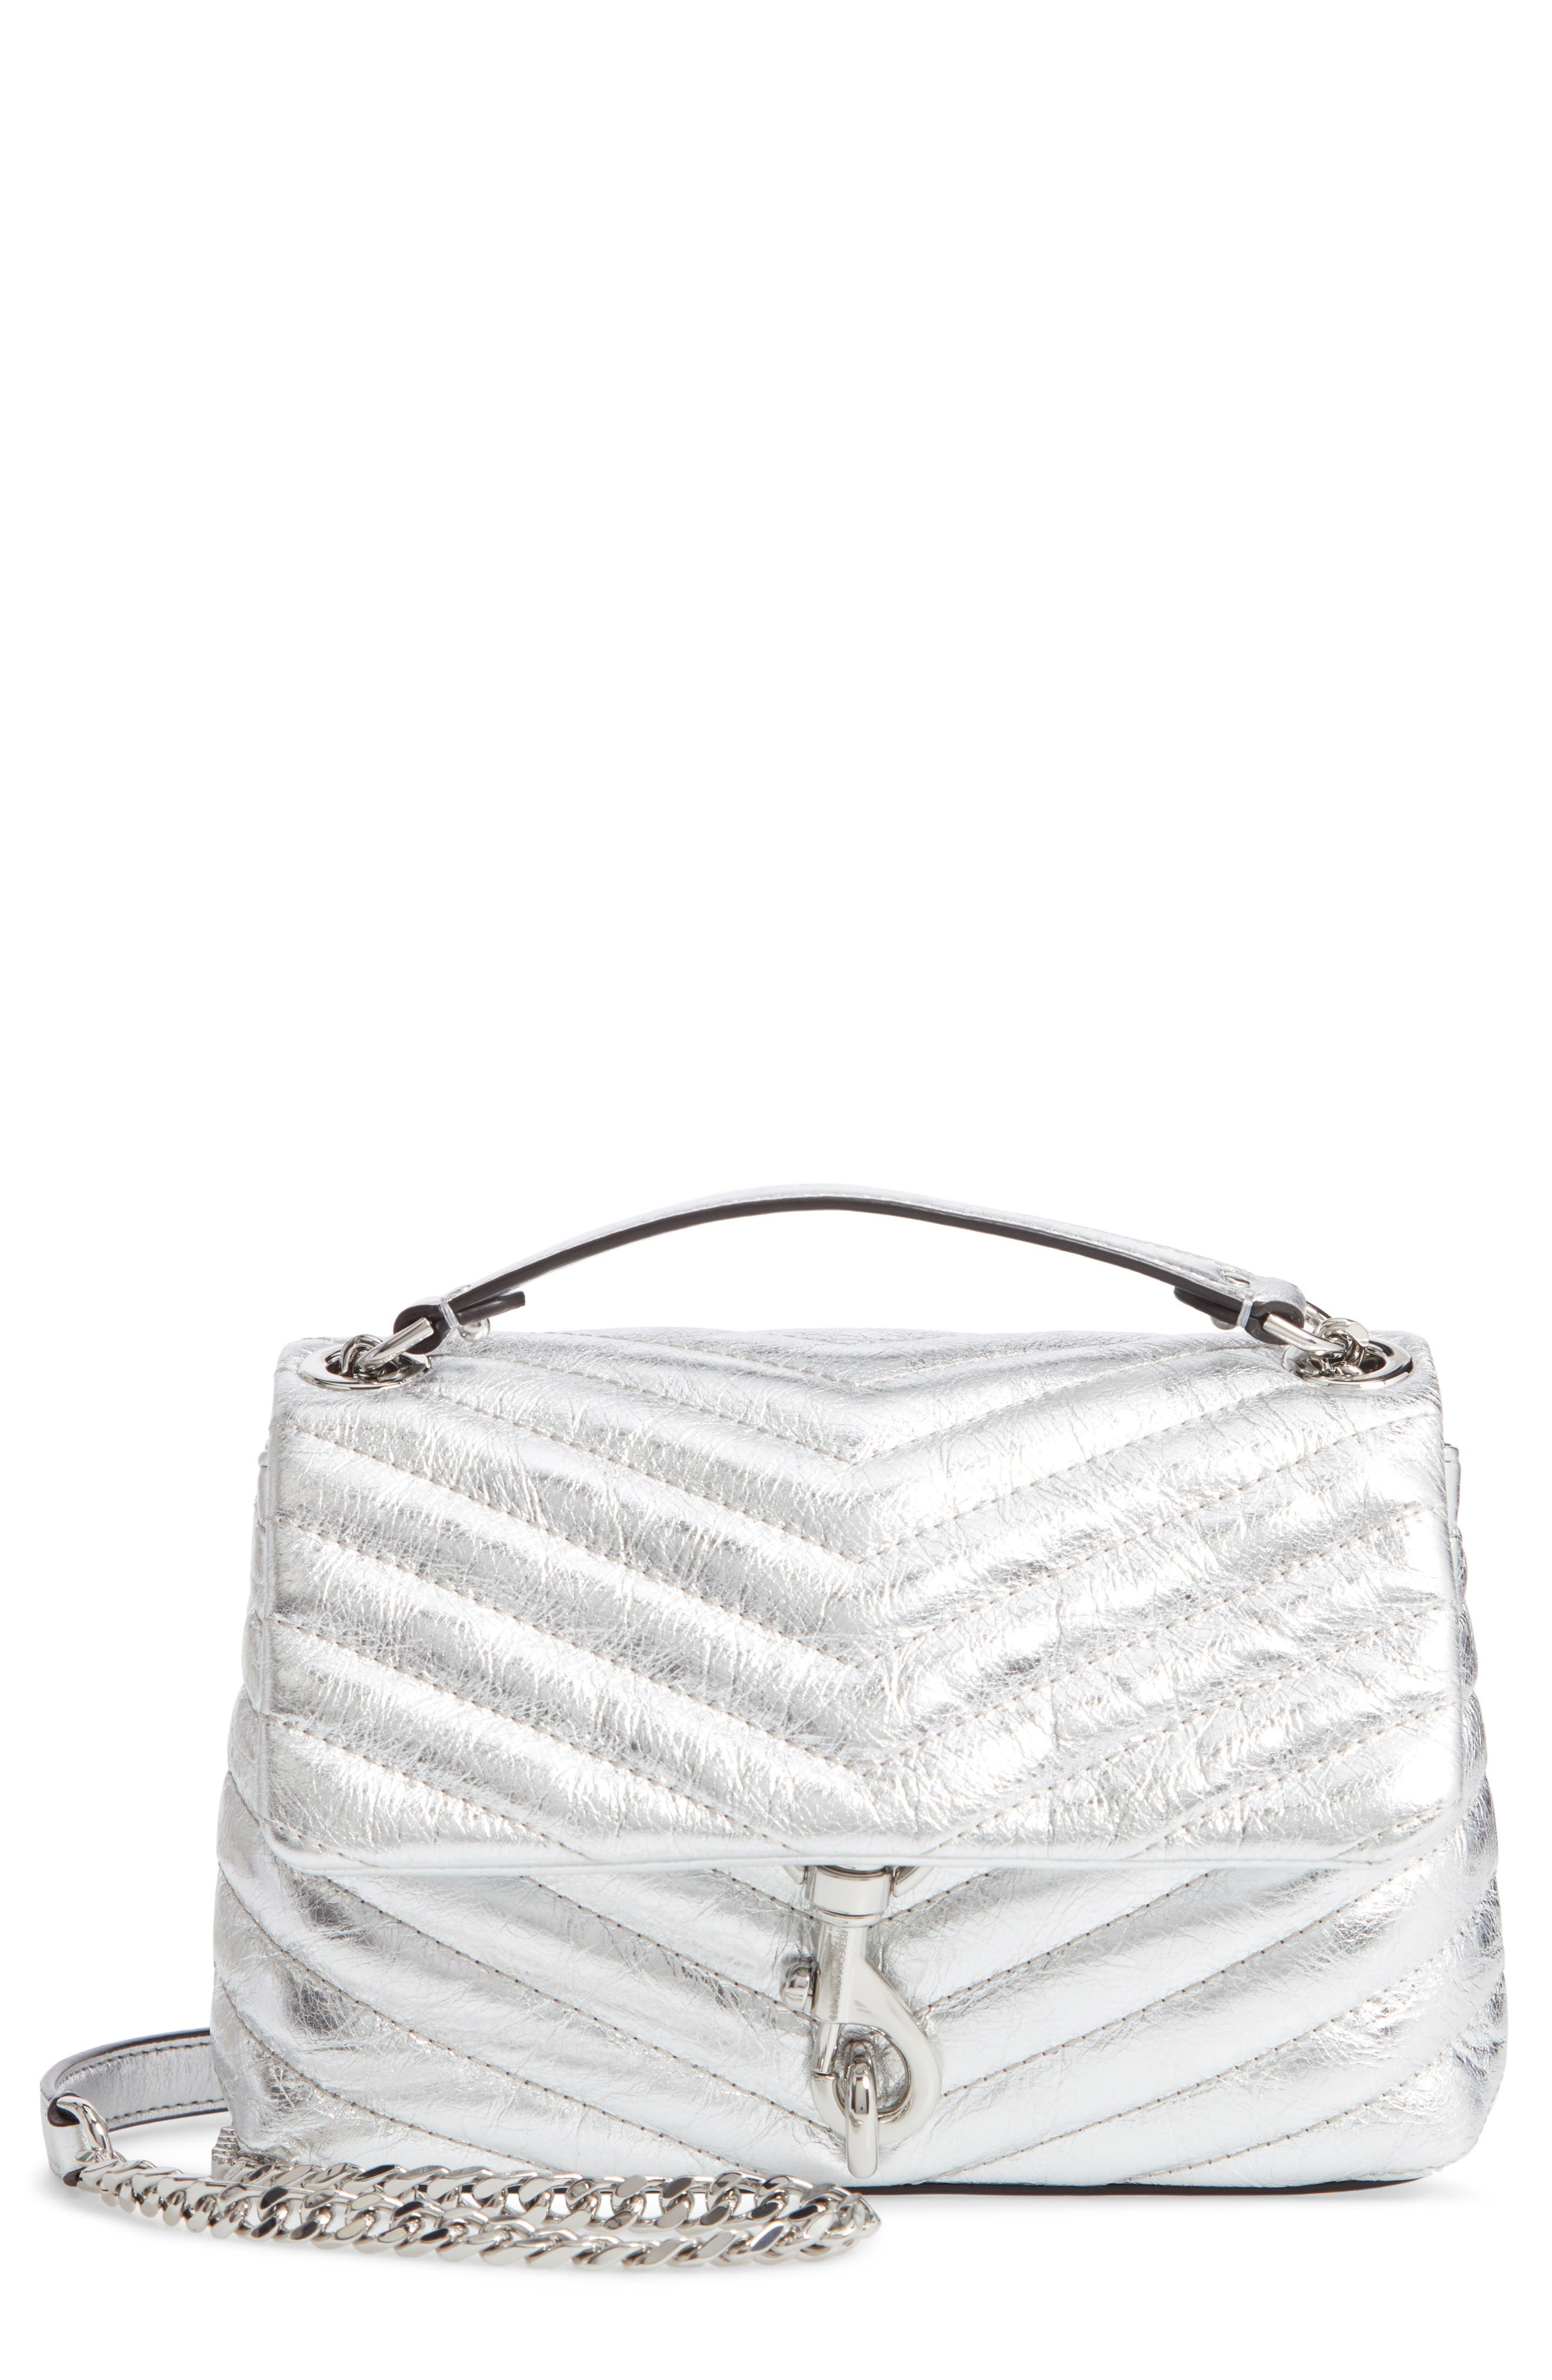 REBECCA MINKOFF Edie Metallic Leather Shoulder Bag, Main, color, SILVER